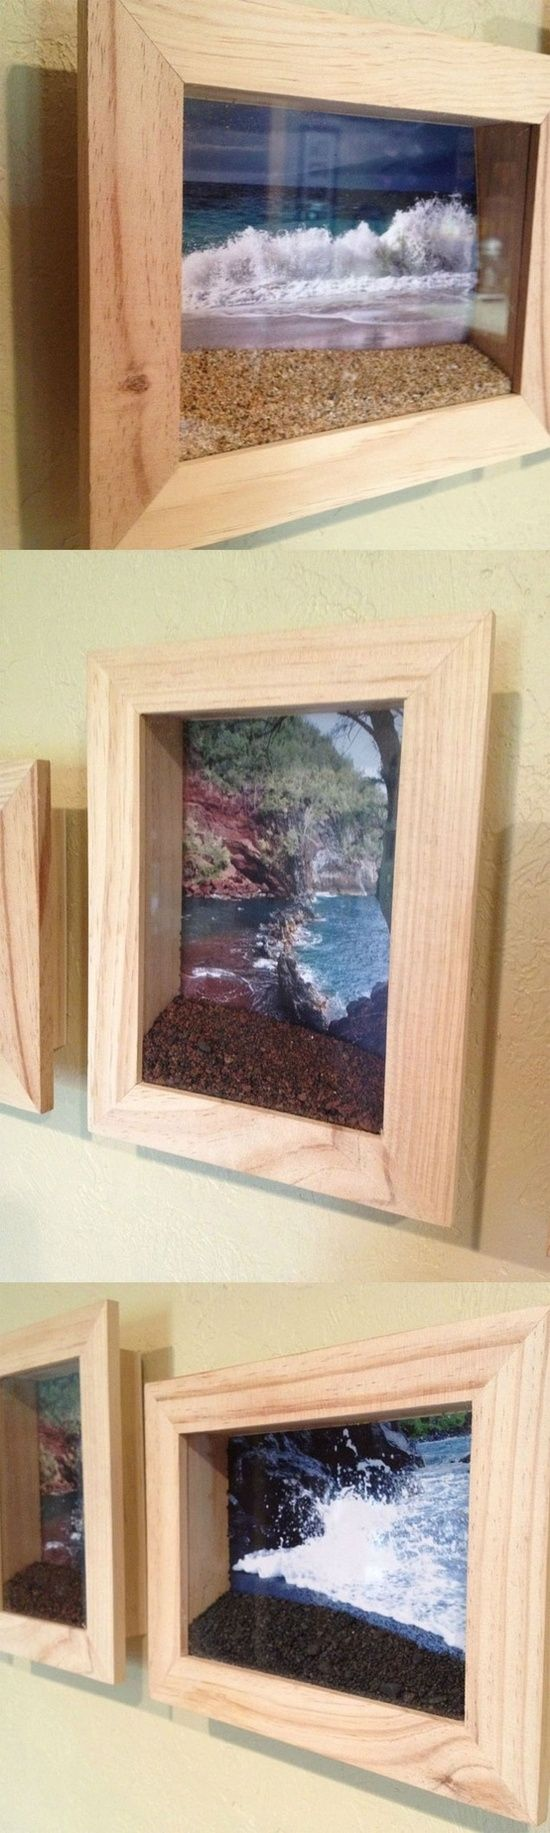 How to put scrapbook paper on wood - Put A Picture Of The Beach You Visited In A Shadow Box Frame And Fill The Bottom With Sand From That Beach